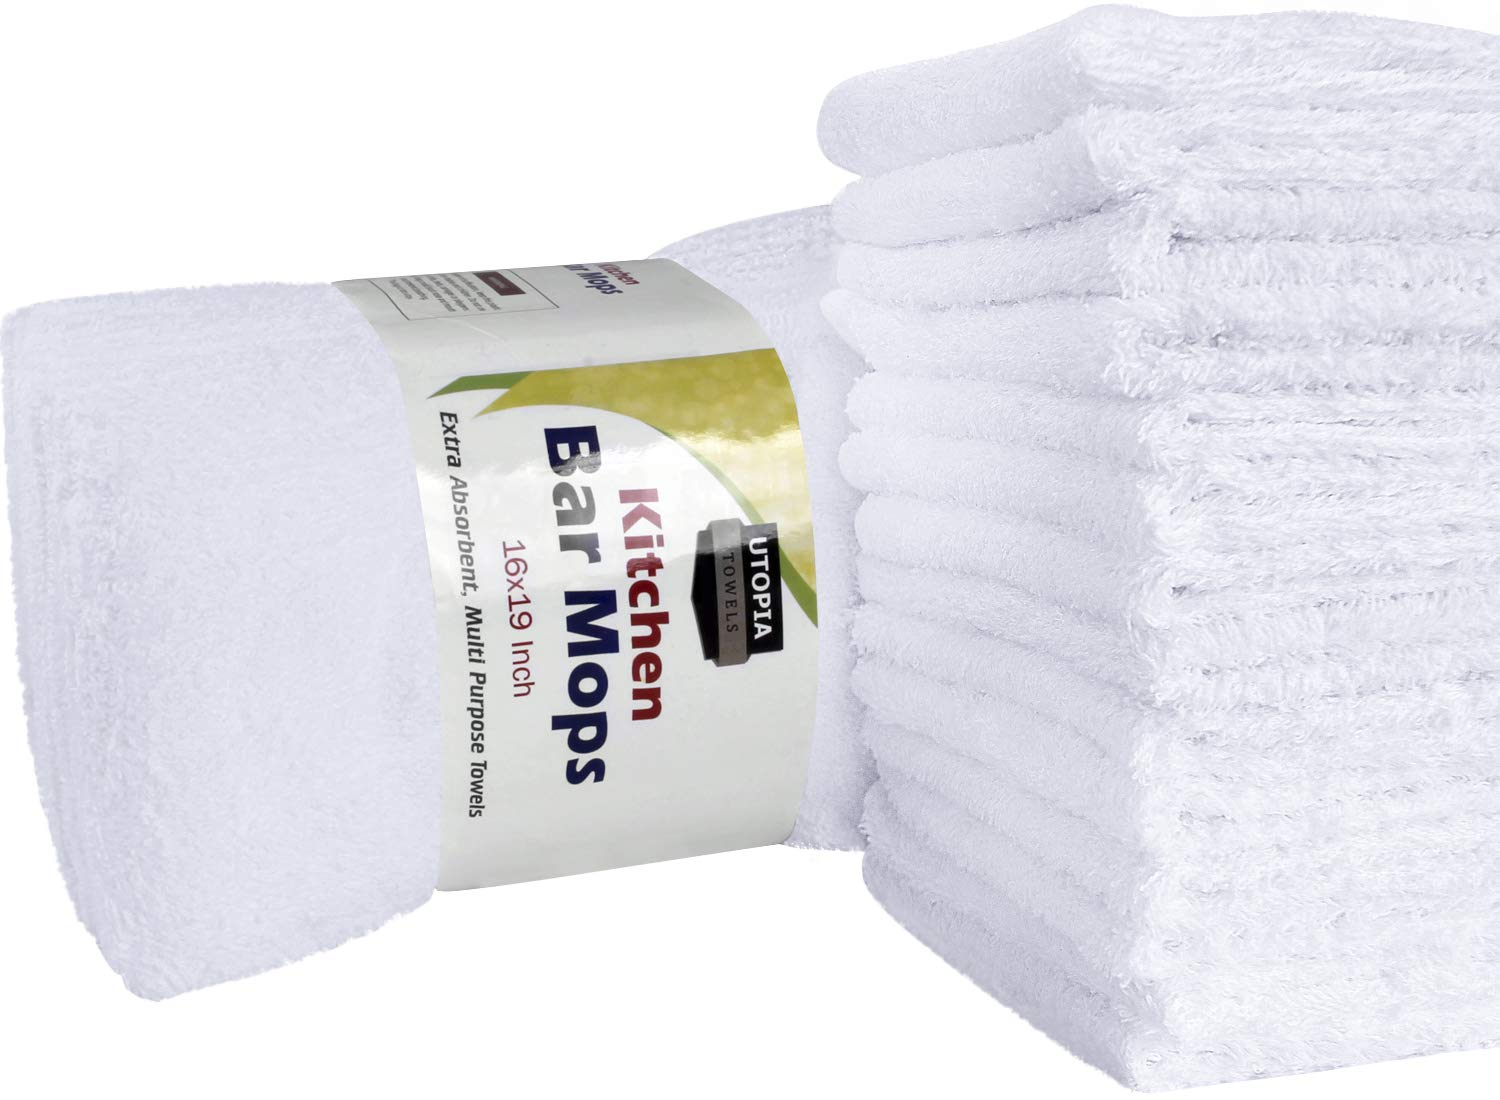 Utopia Towels 12 Pack Kitchen Bar Mops Towels 16 x 19 inches, White Bar Towels and Cleaning Towels by Utopia Towels